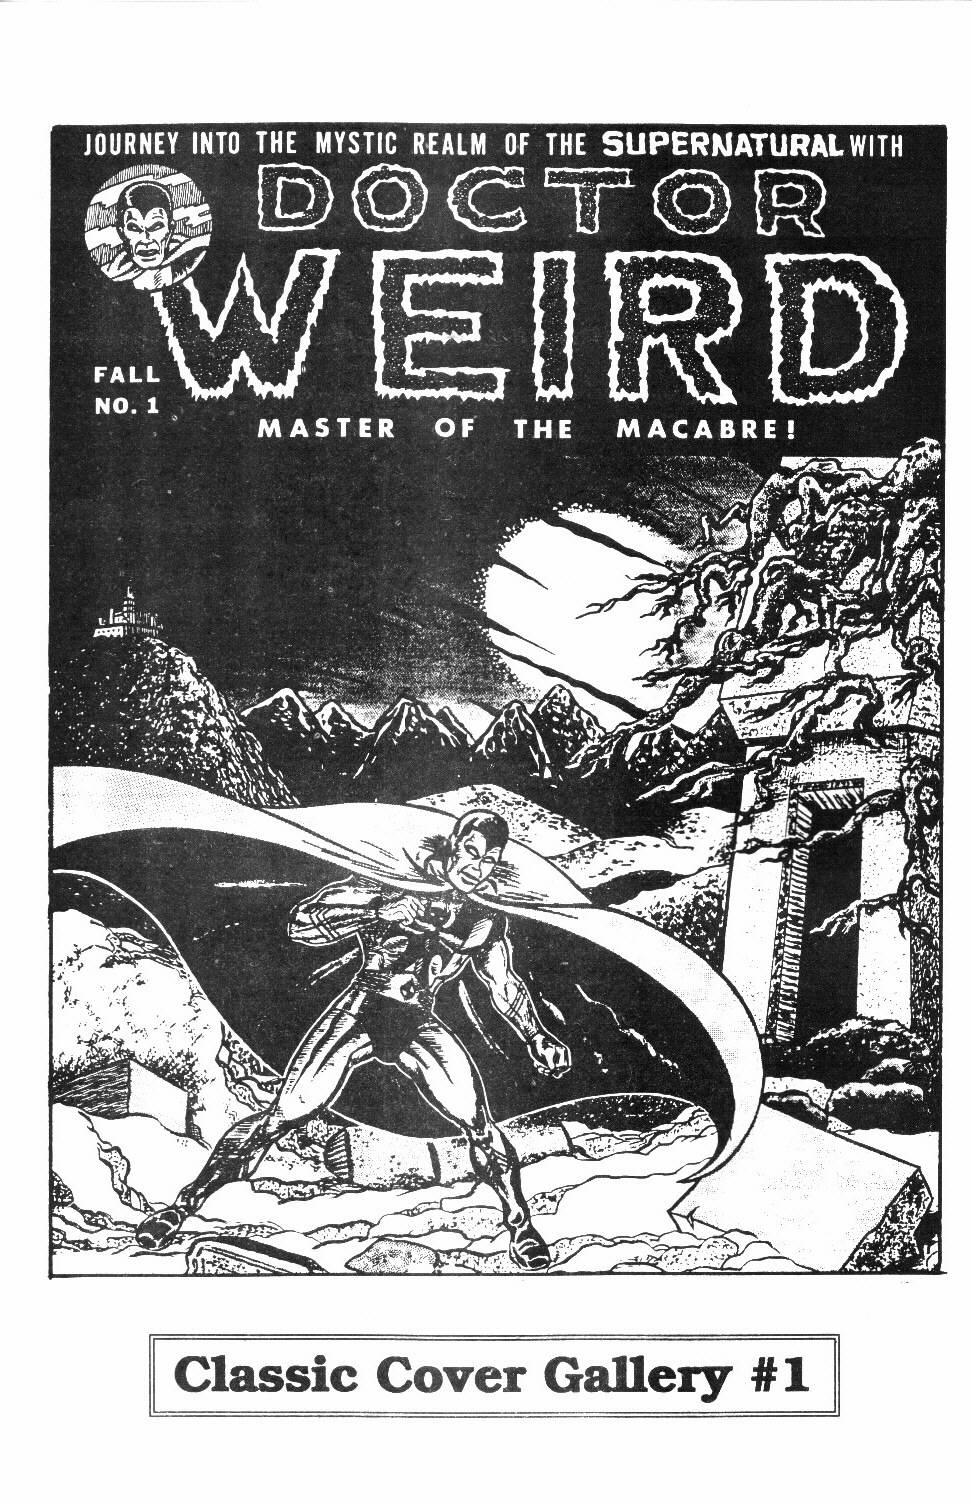 Read online Dr. Weird Special comic -  Issue # Full - 17